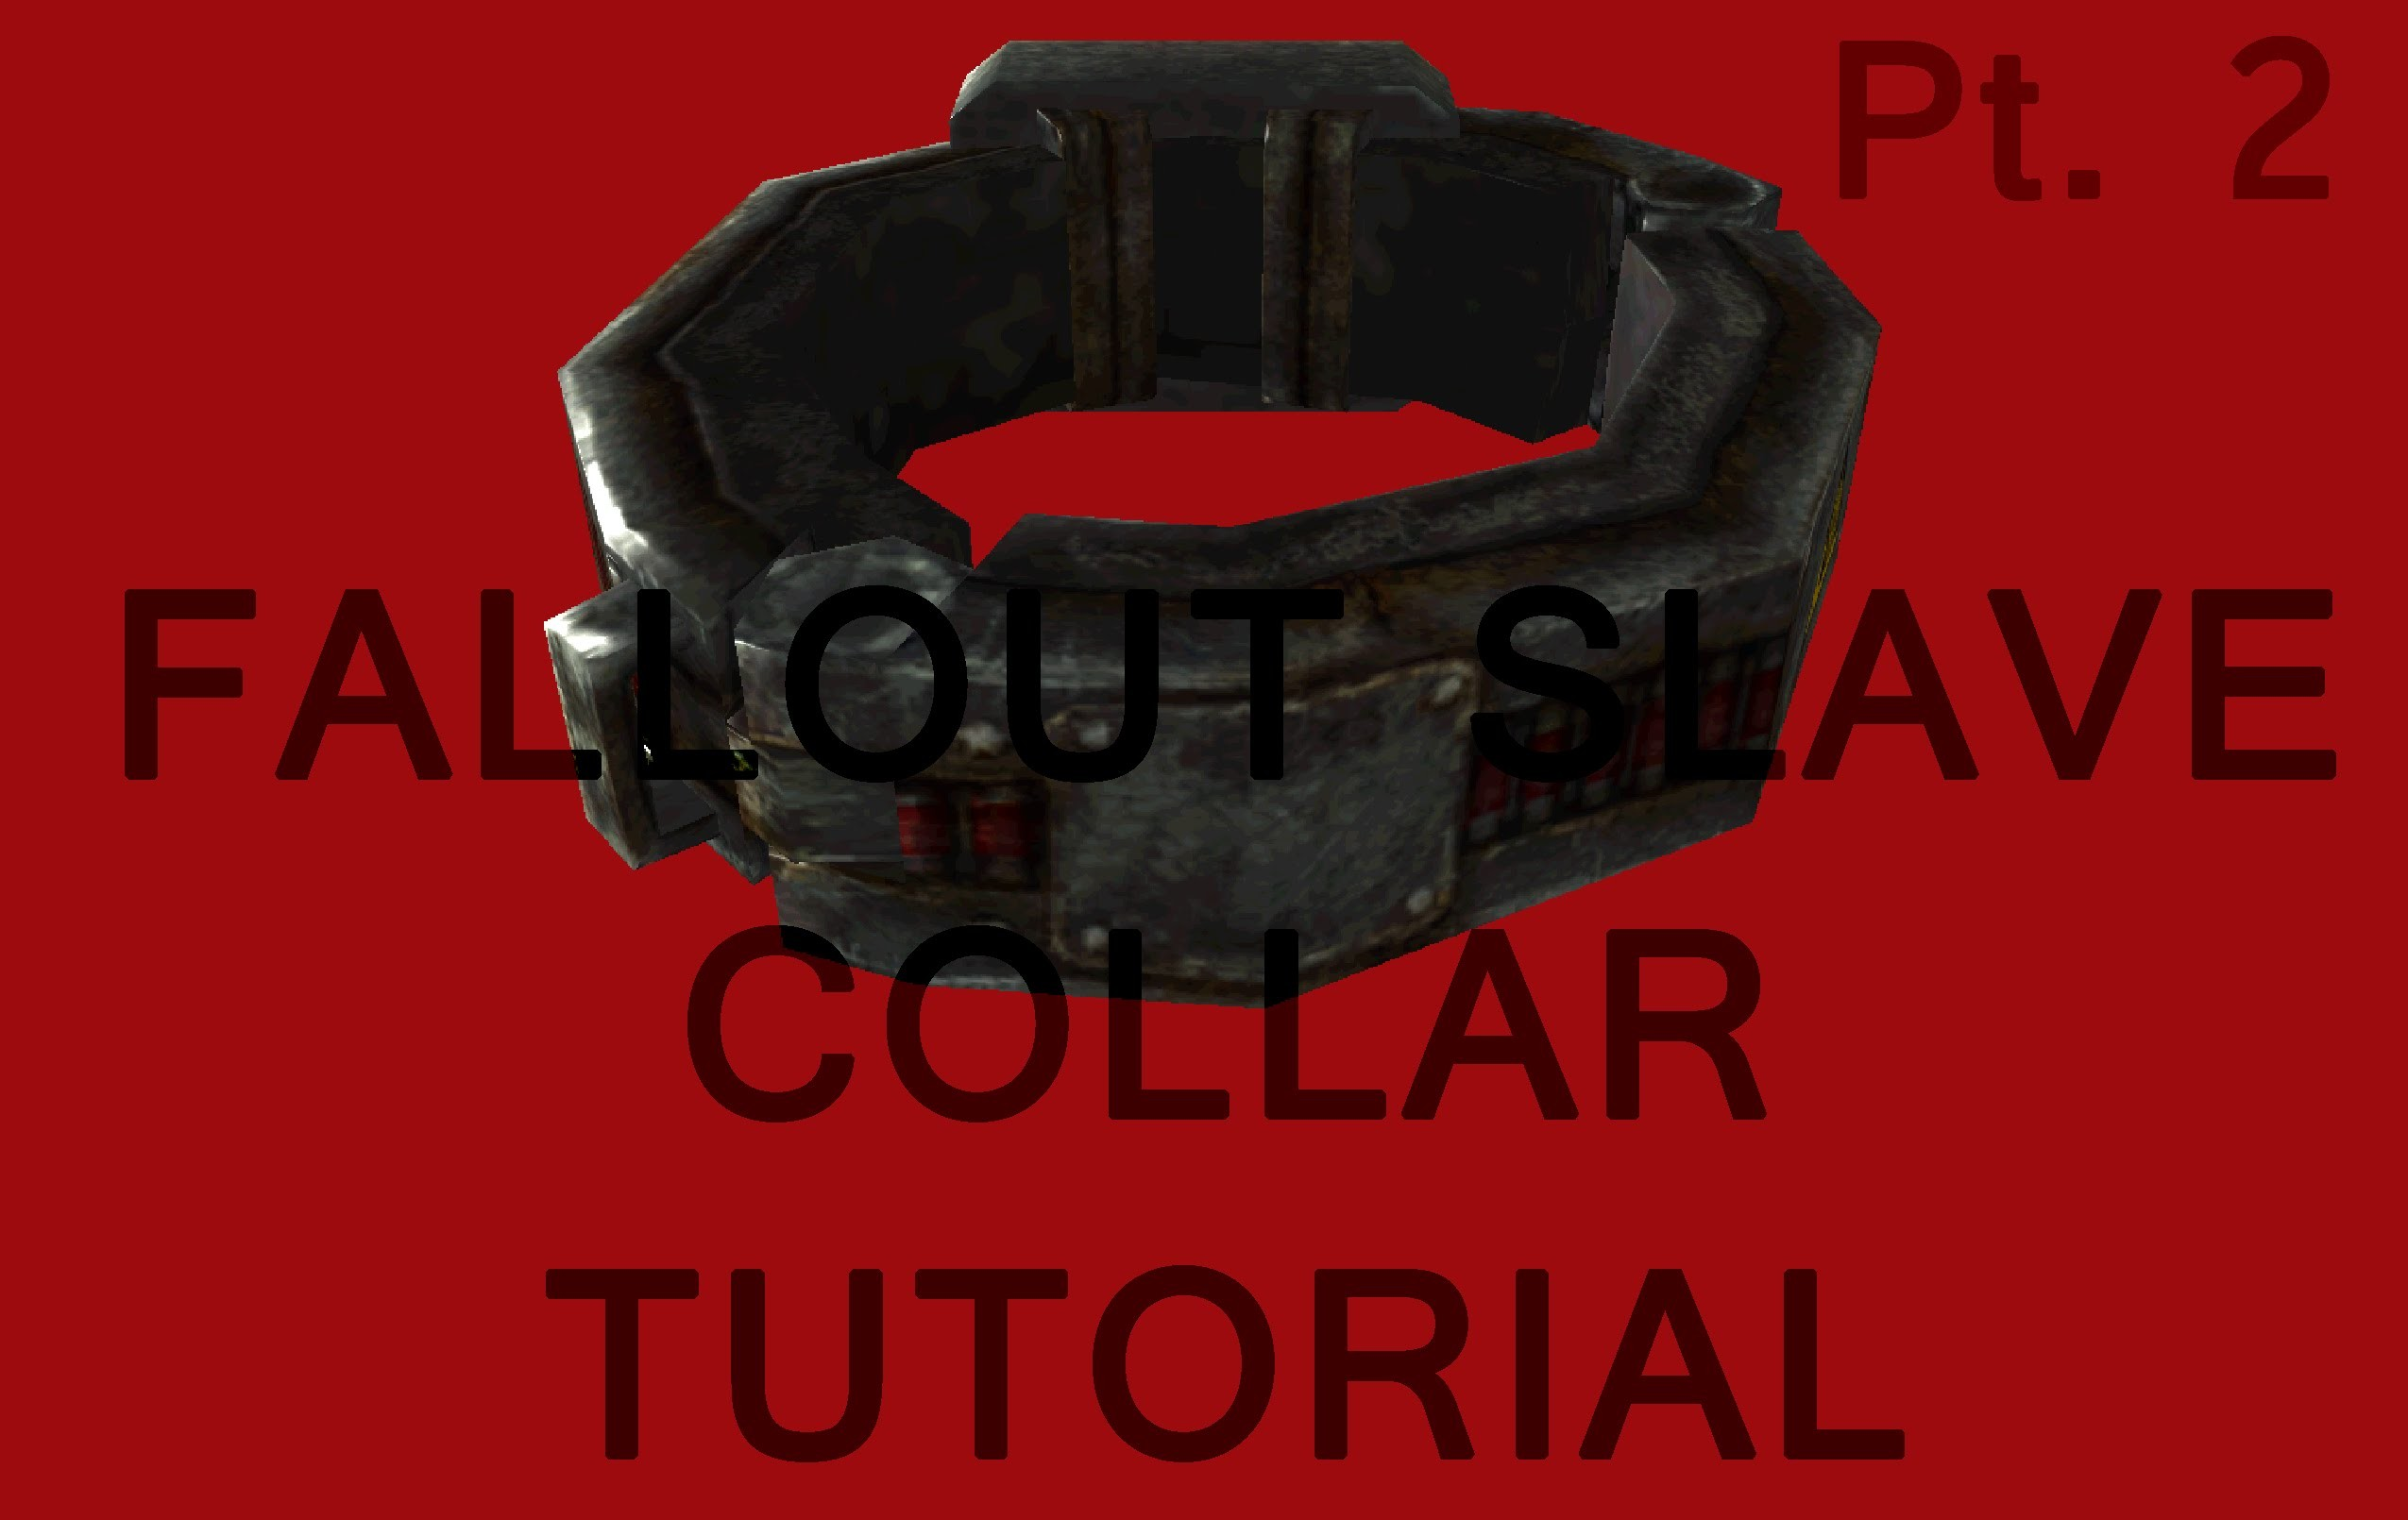 Fallout 3.NV Slave Collar Tutorial Pt. 2